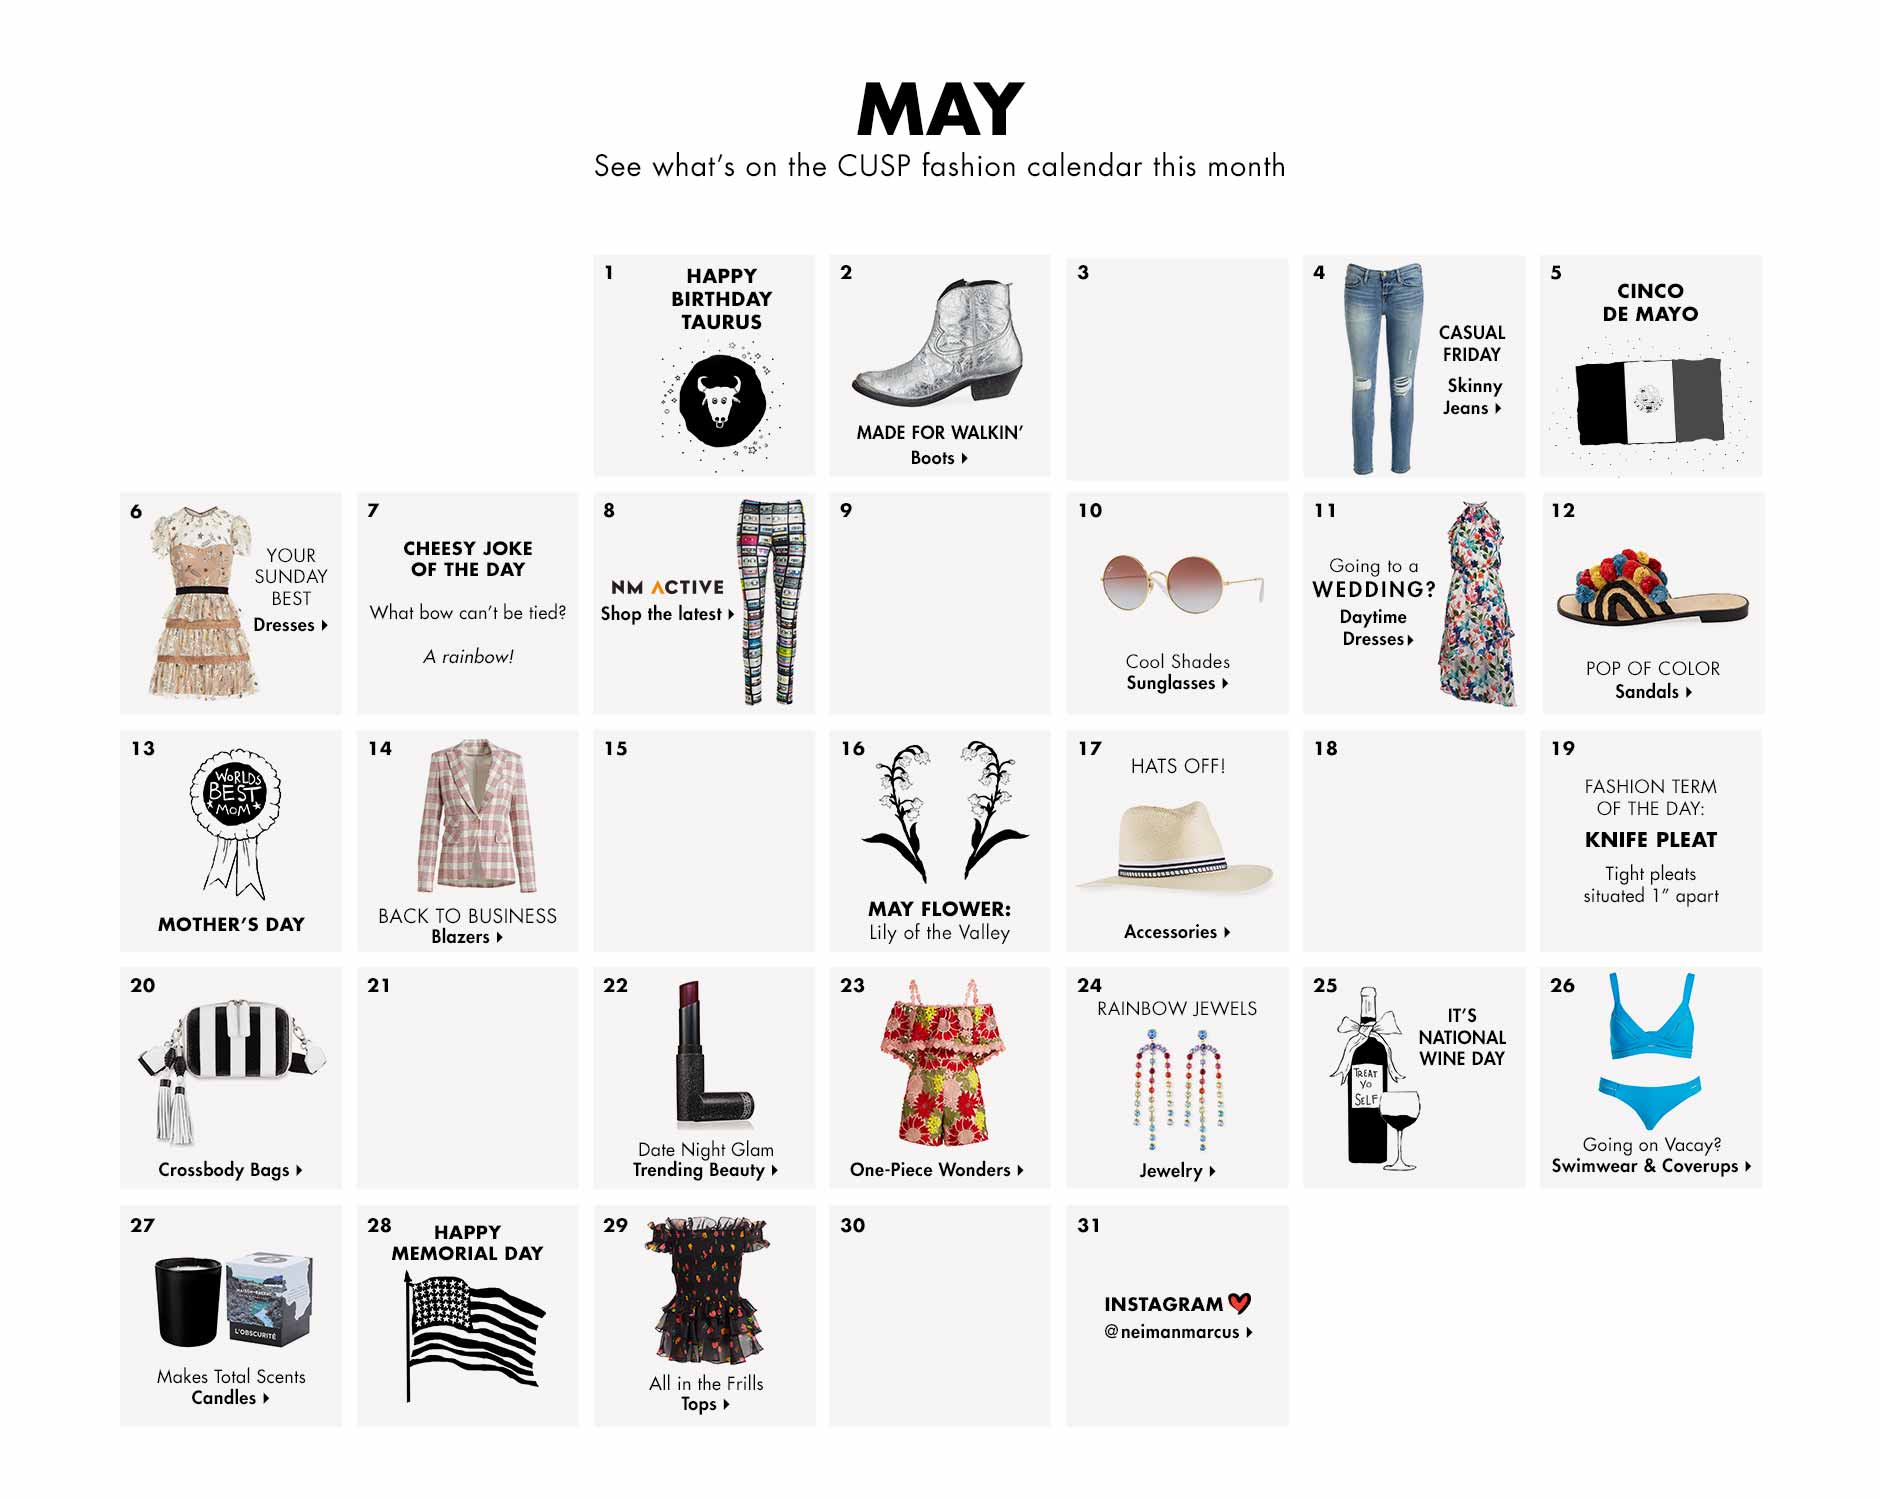 May - See what's on the CUSP fashion calendar this month